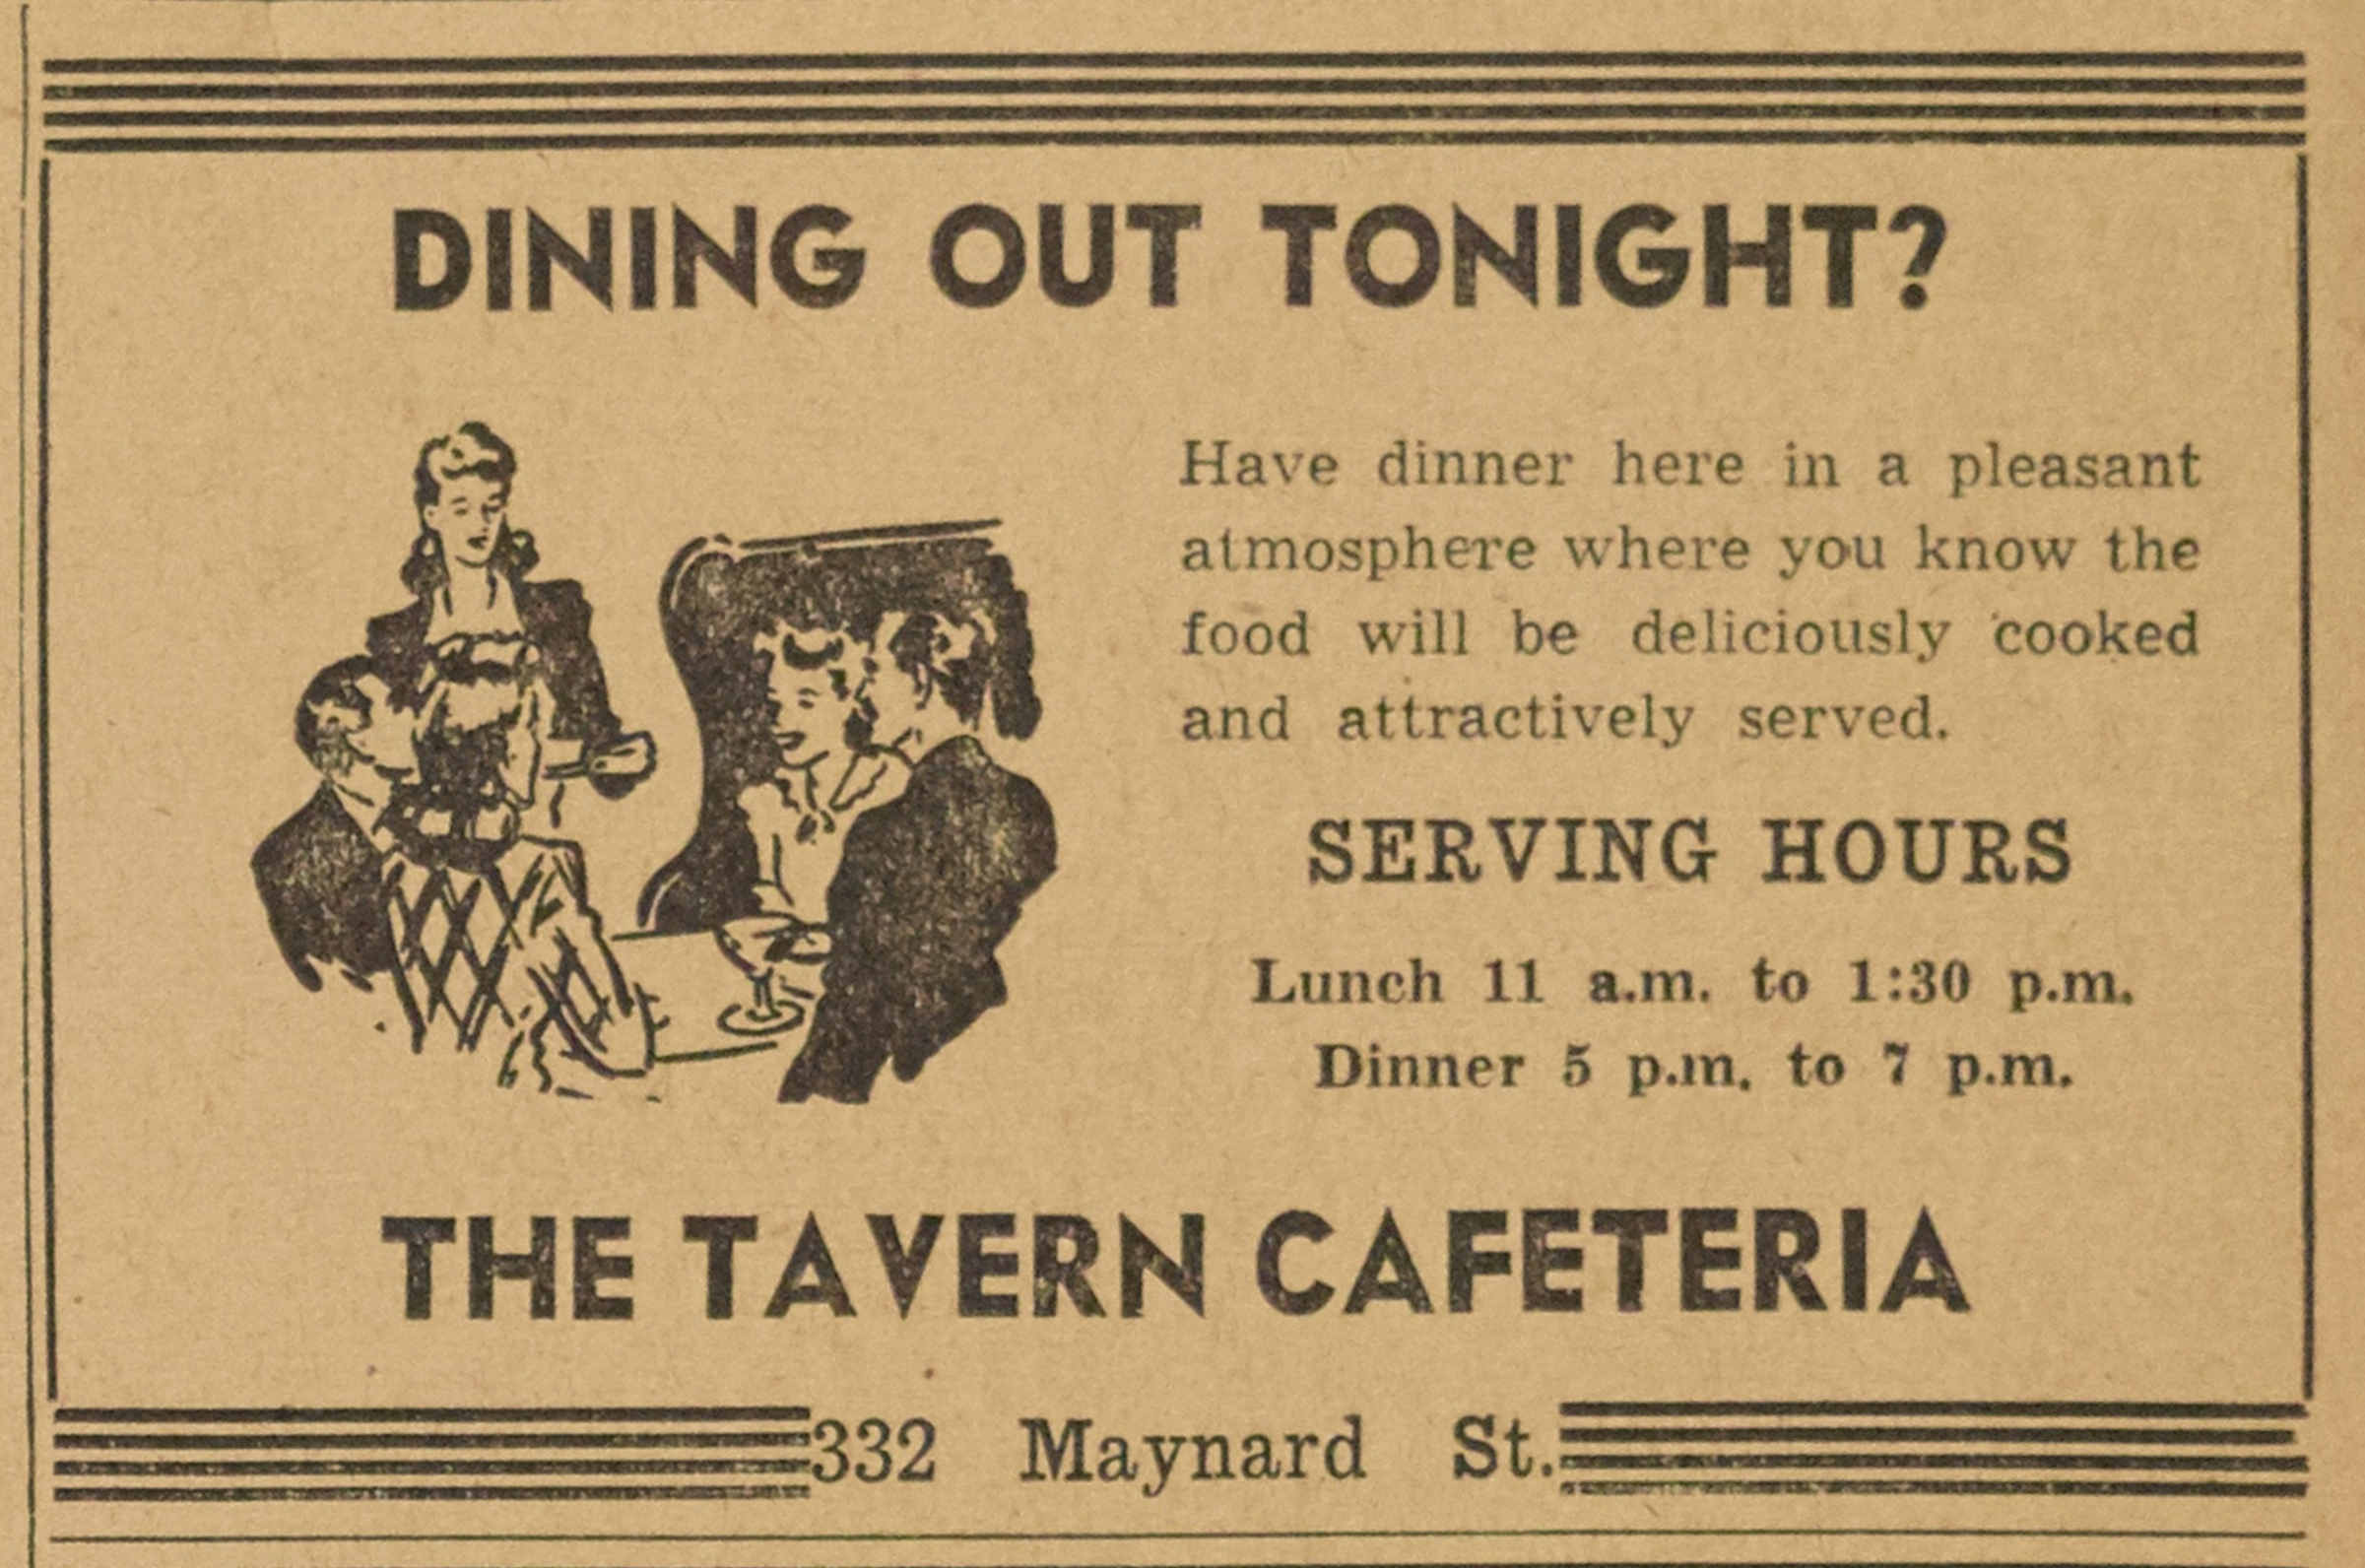 The Tavern Cafeteria image